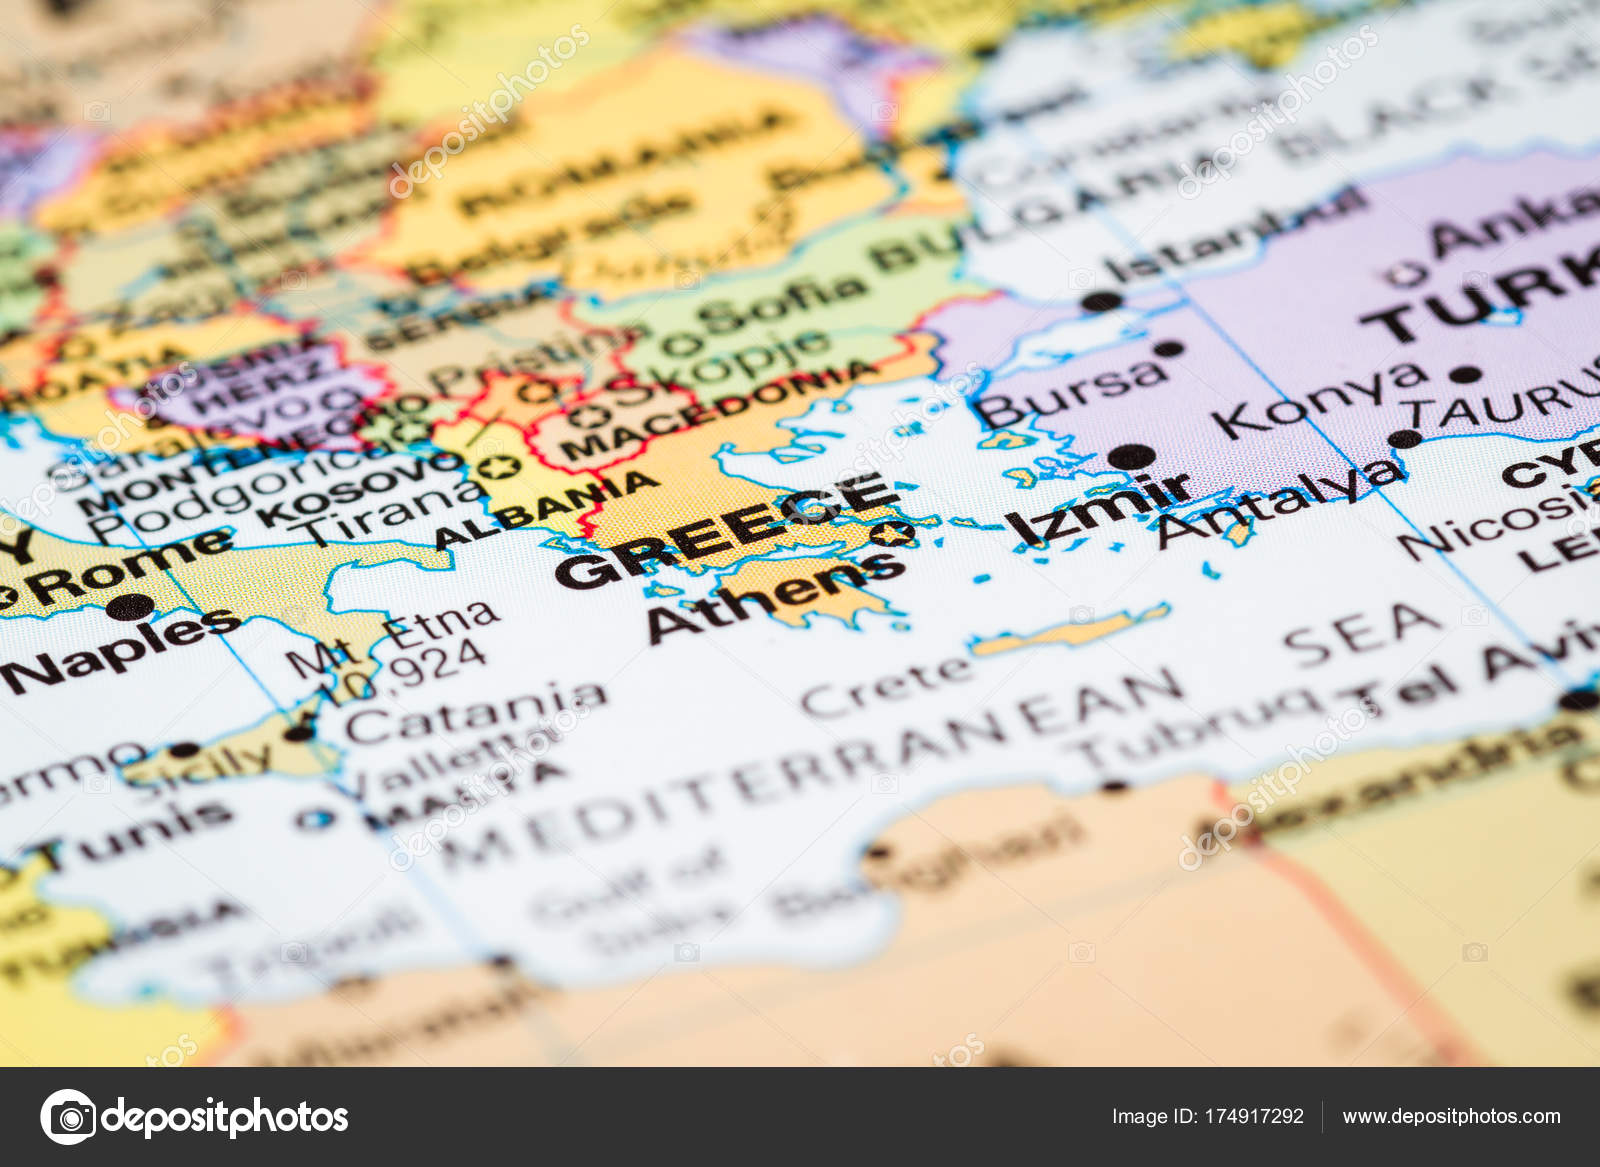 Athens greece on a map stock photo wollertz 174917292 close up of a world map with greece in focus photo by wollertz gumiabroncs Choice Image